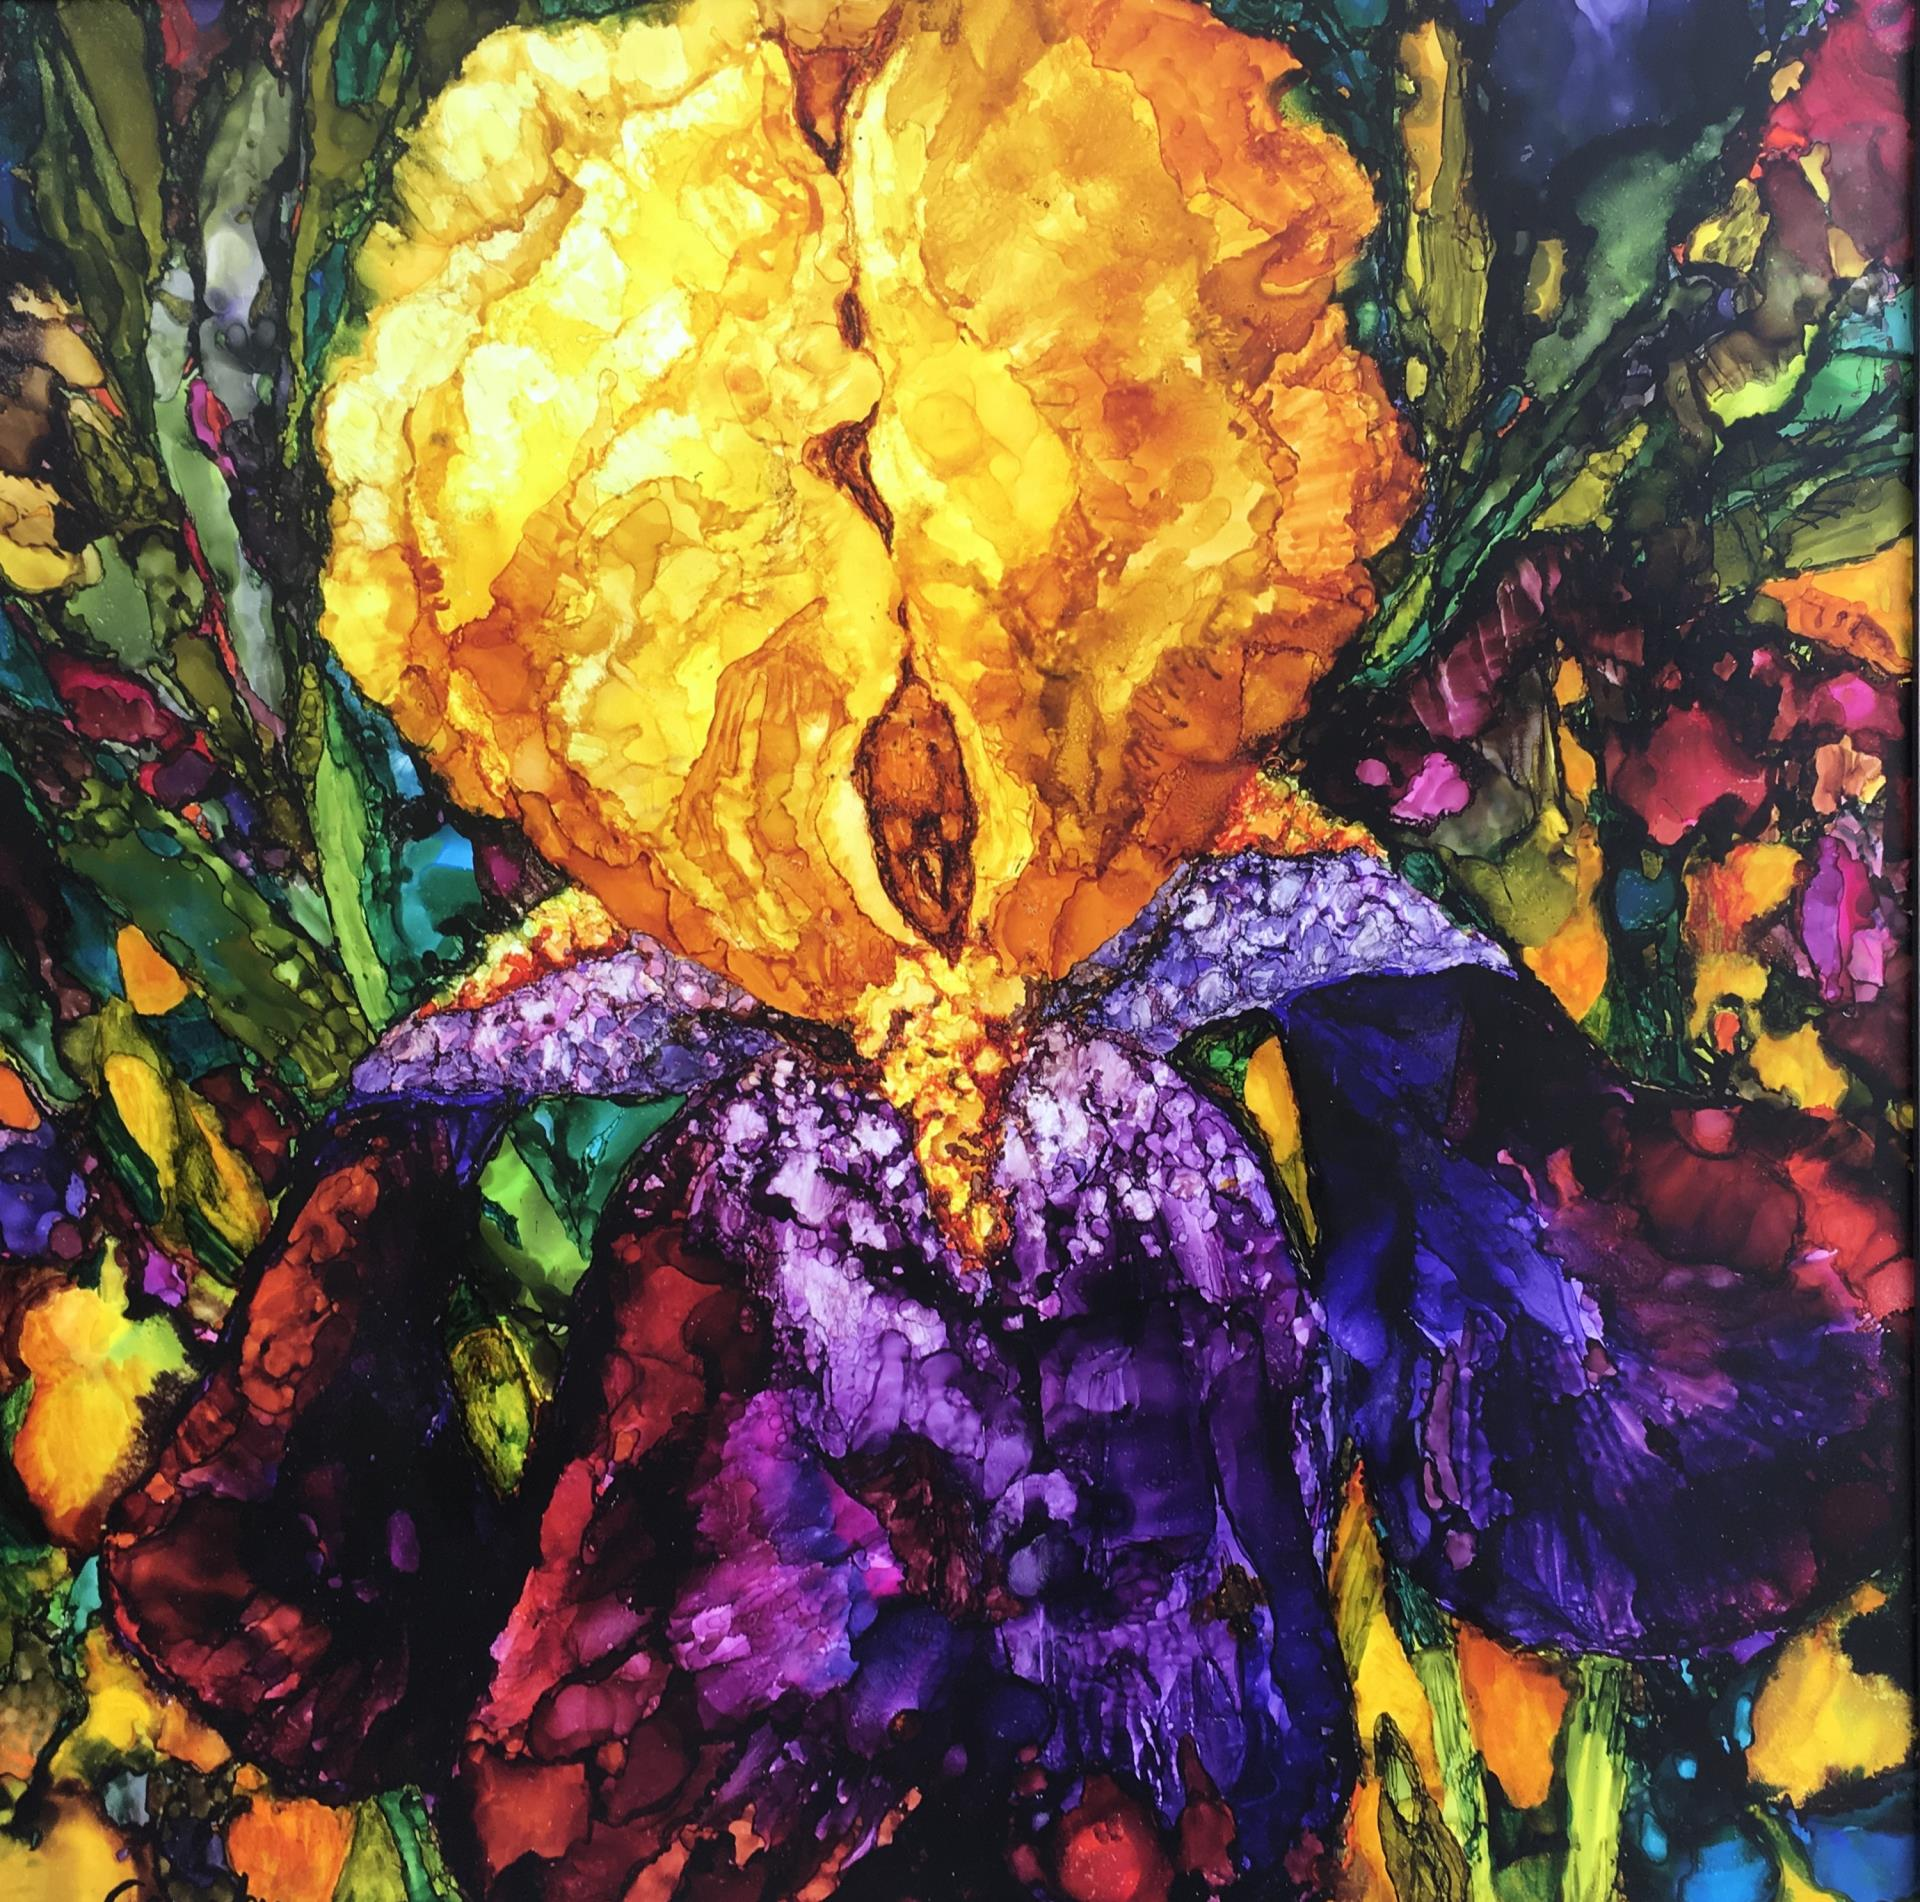 27a Linda Lee Gimby - Queen Iris - alcohol ink 24x24